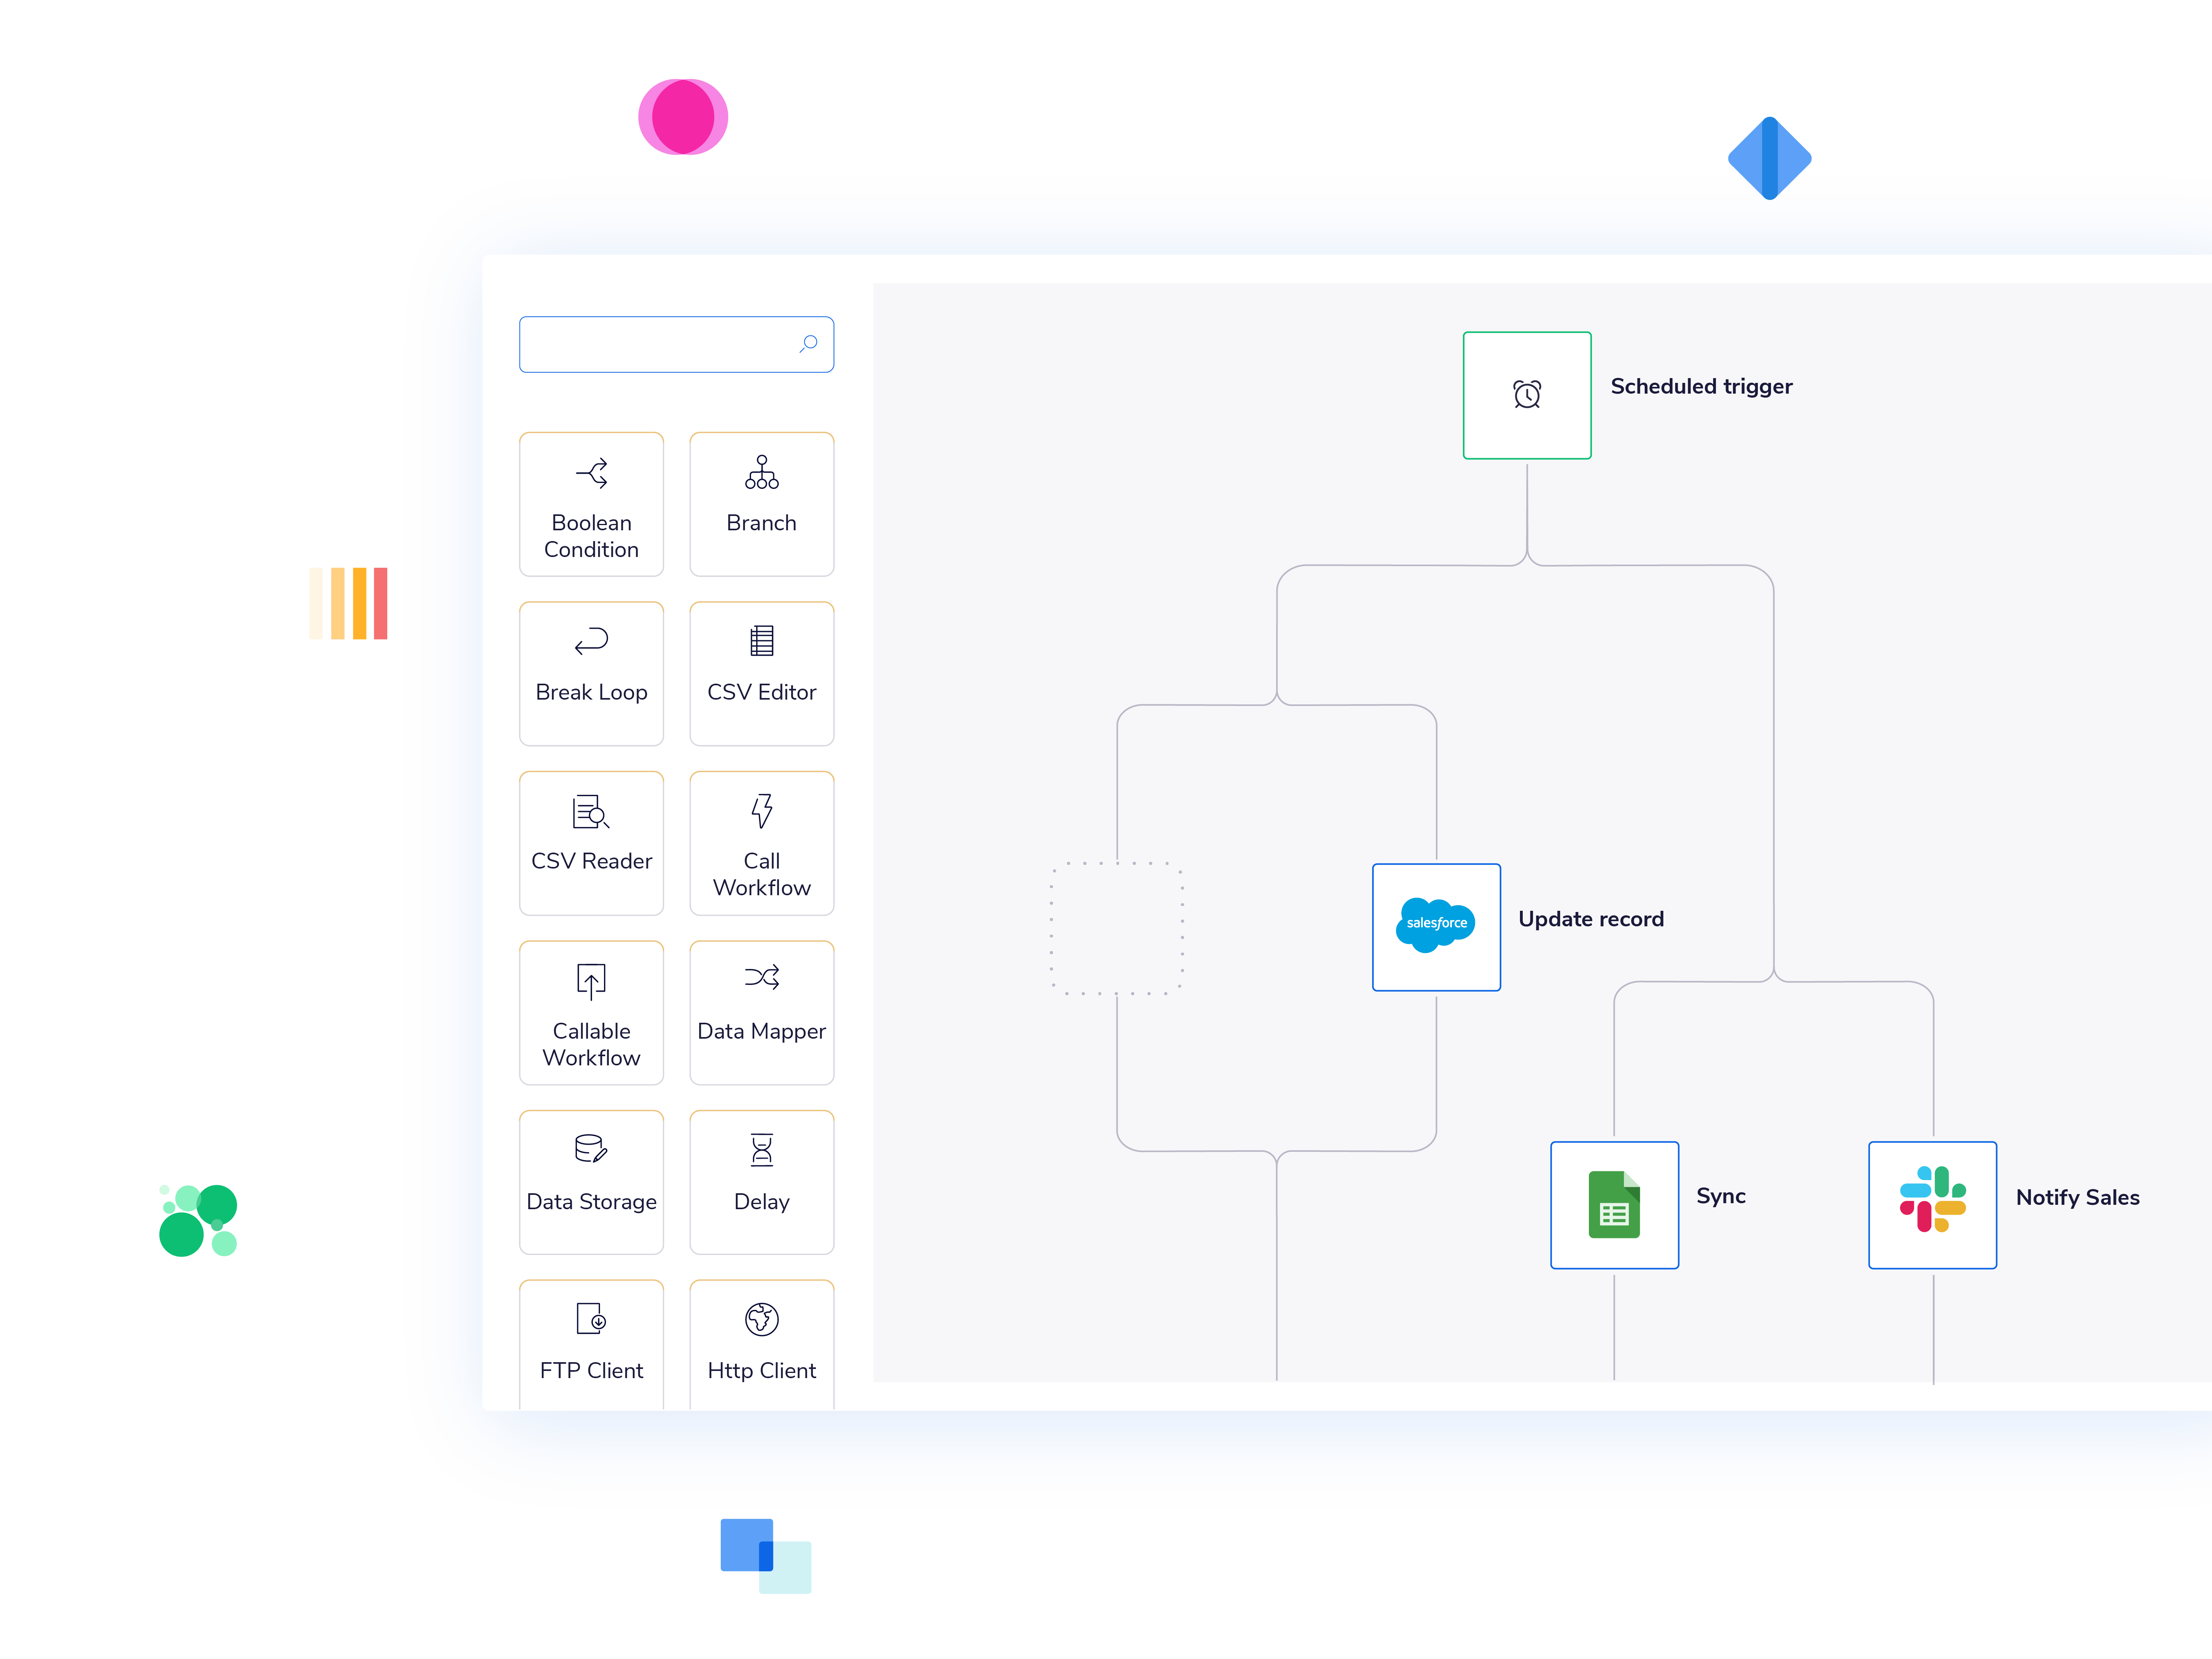 The Tray Platform gives users a robust workflow builder to quick automate across their org